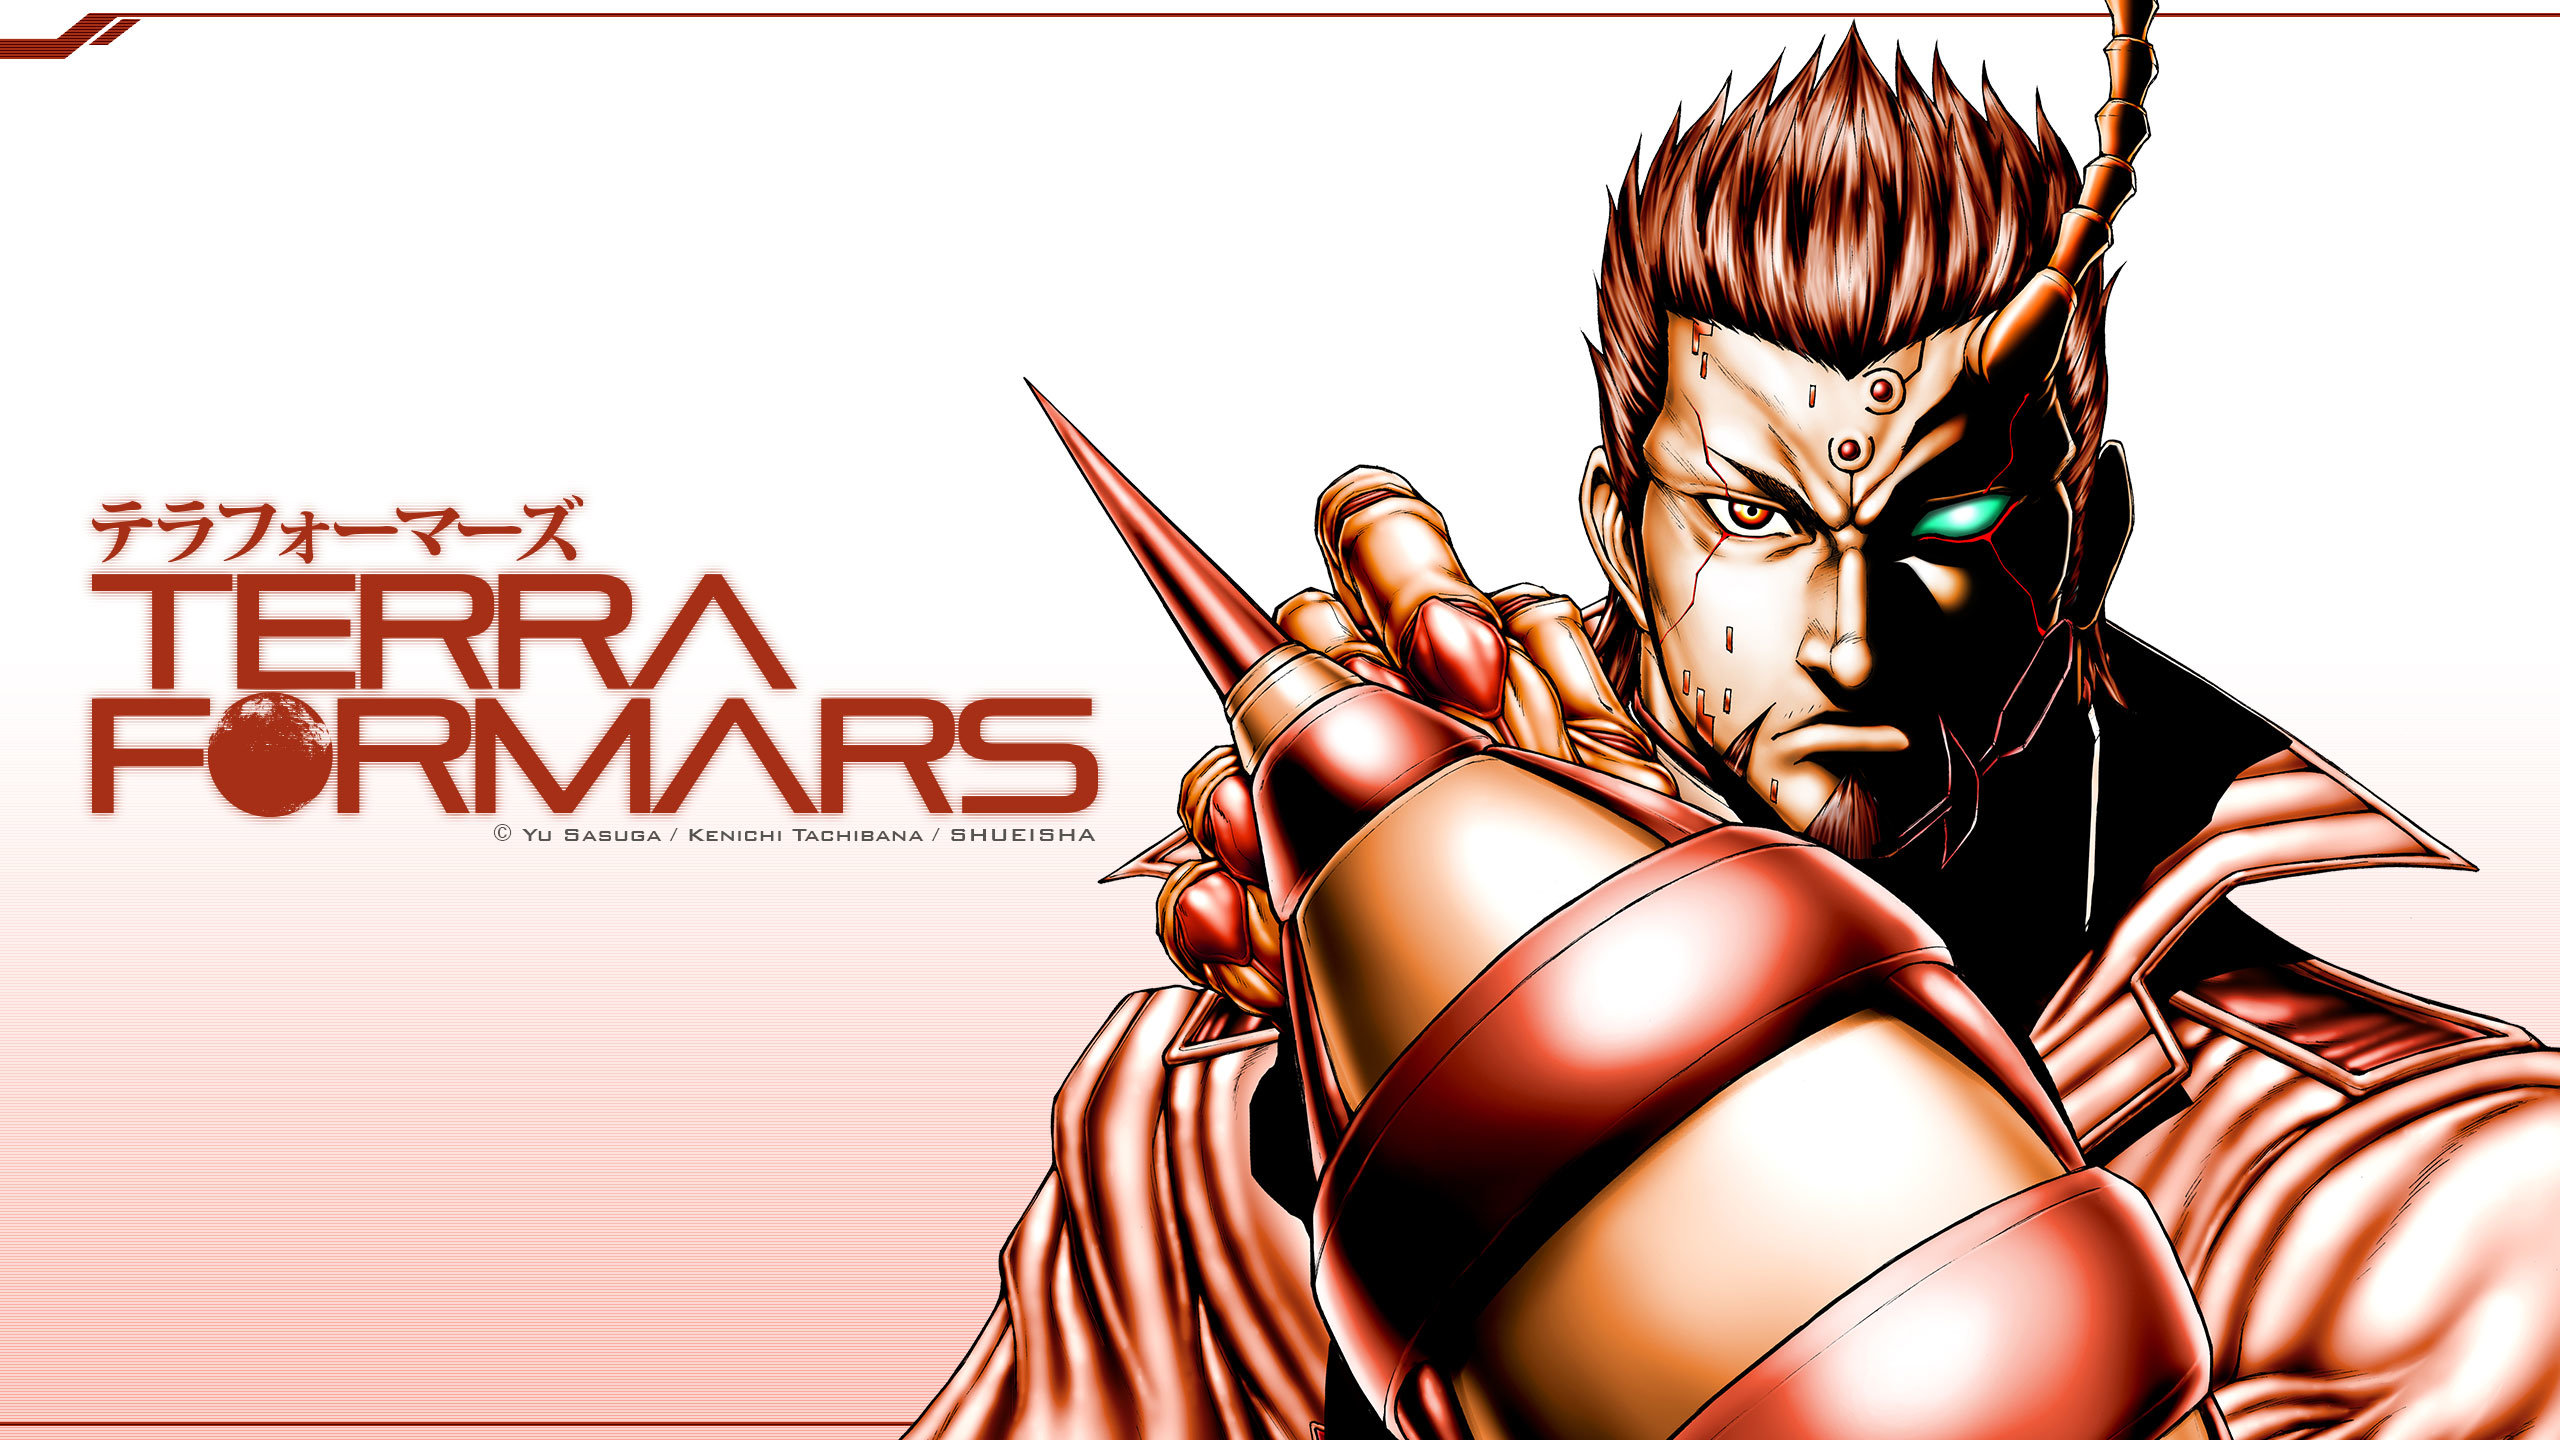 Terra Formars Wallpapers Hd For Desktop Backgrounds